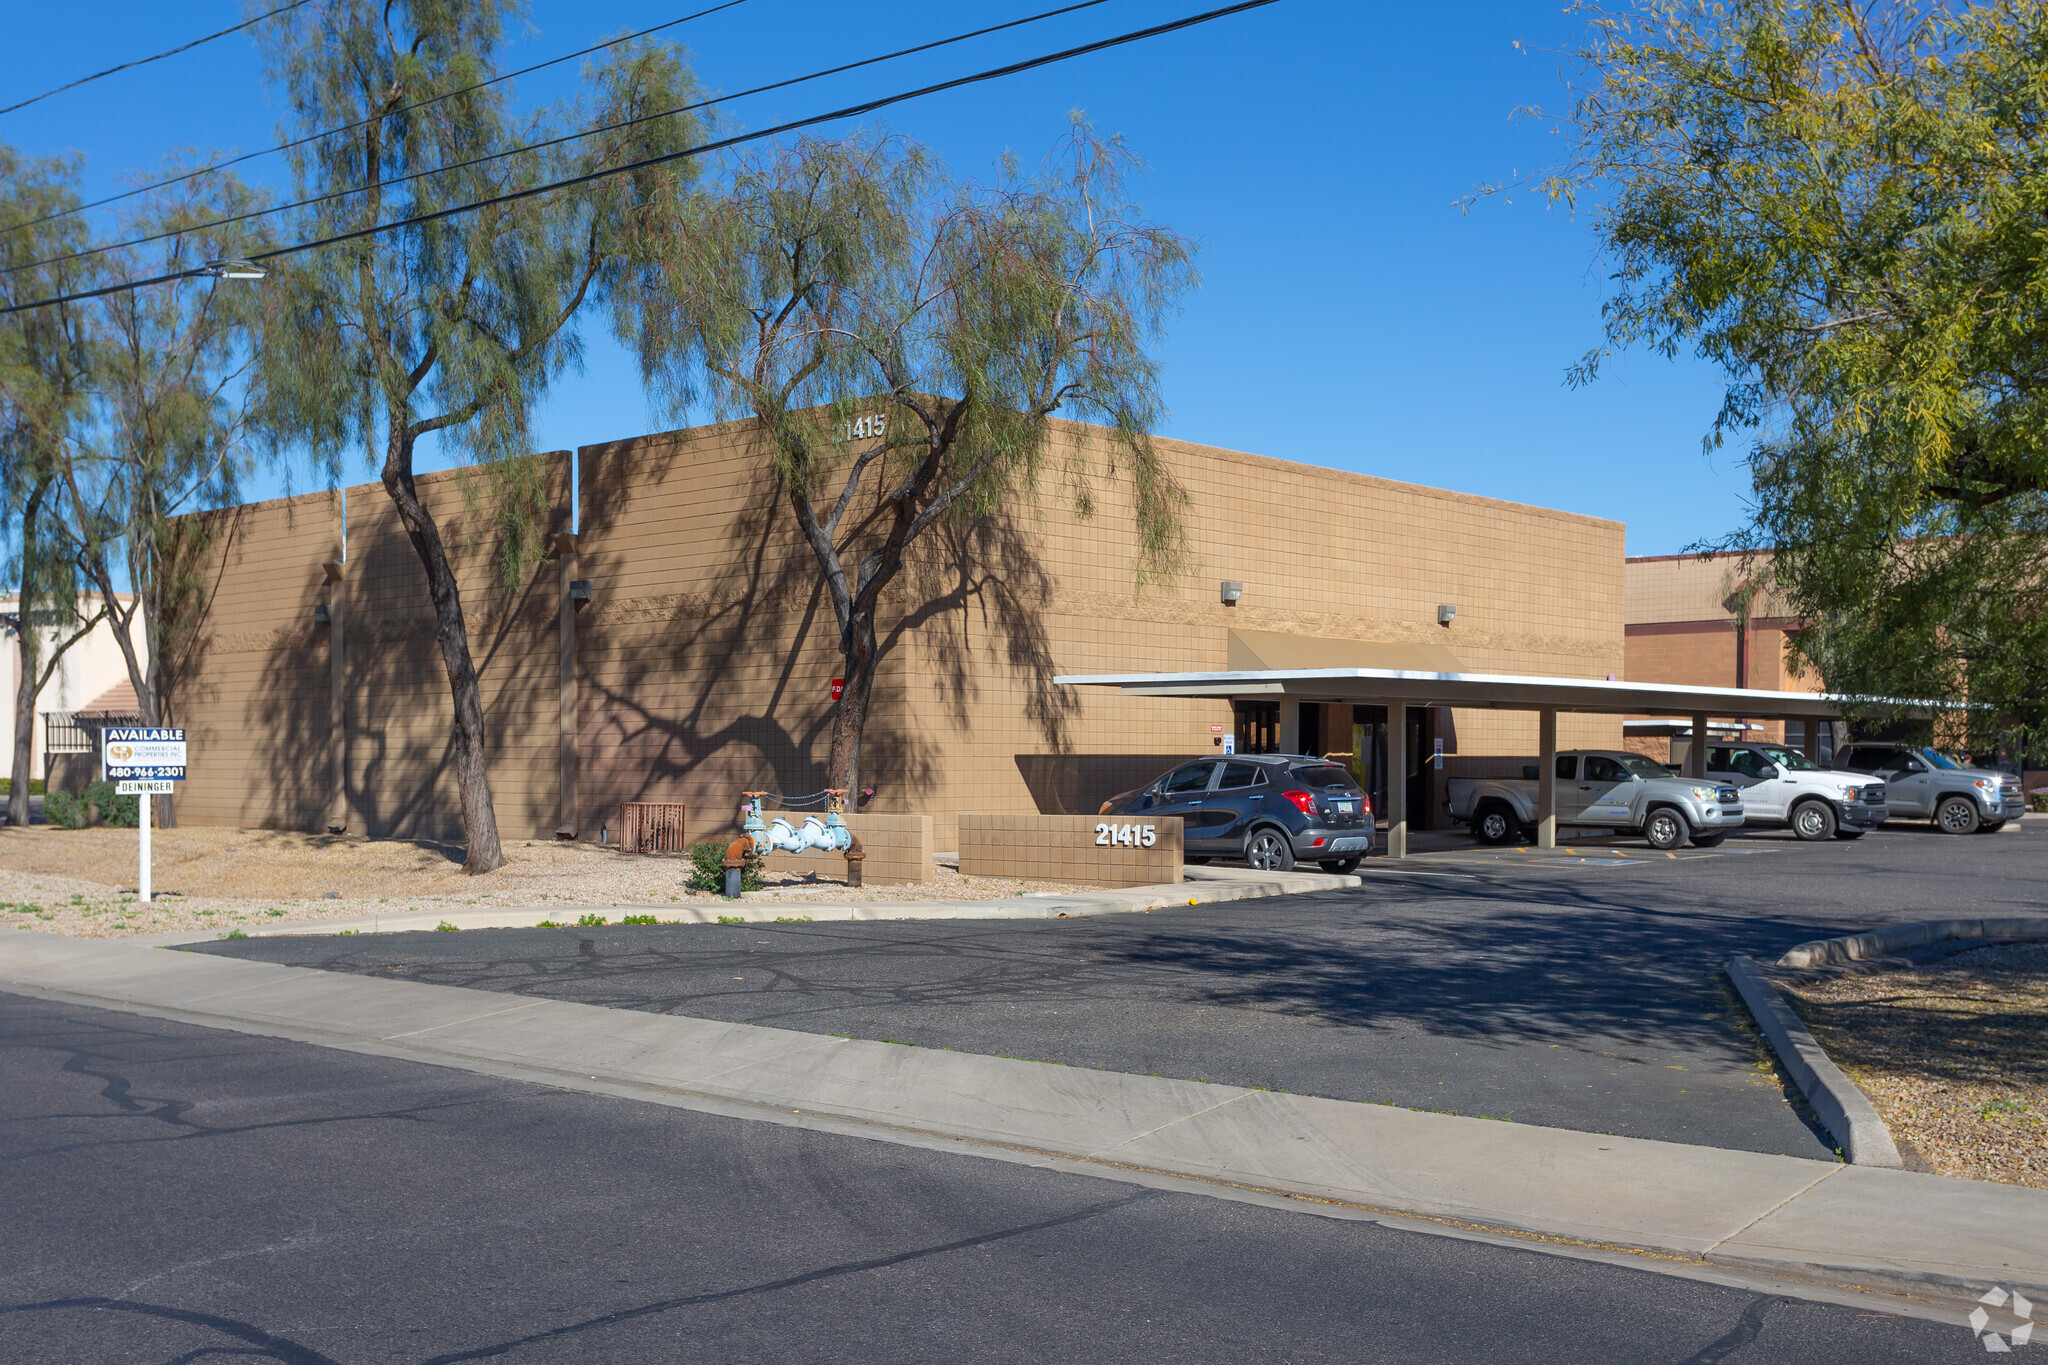 21415 N 23rd Ave, Phoenix AZ 85027 Industrial Warehouse